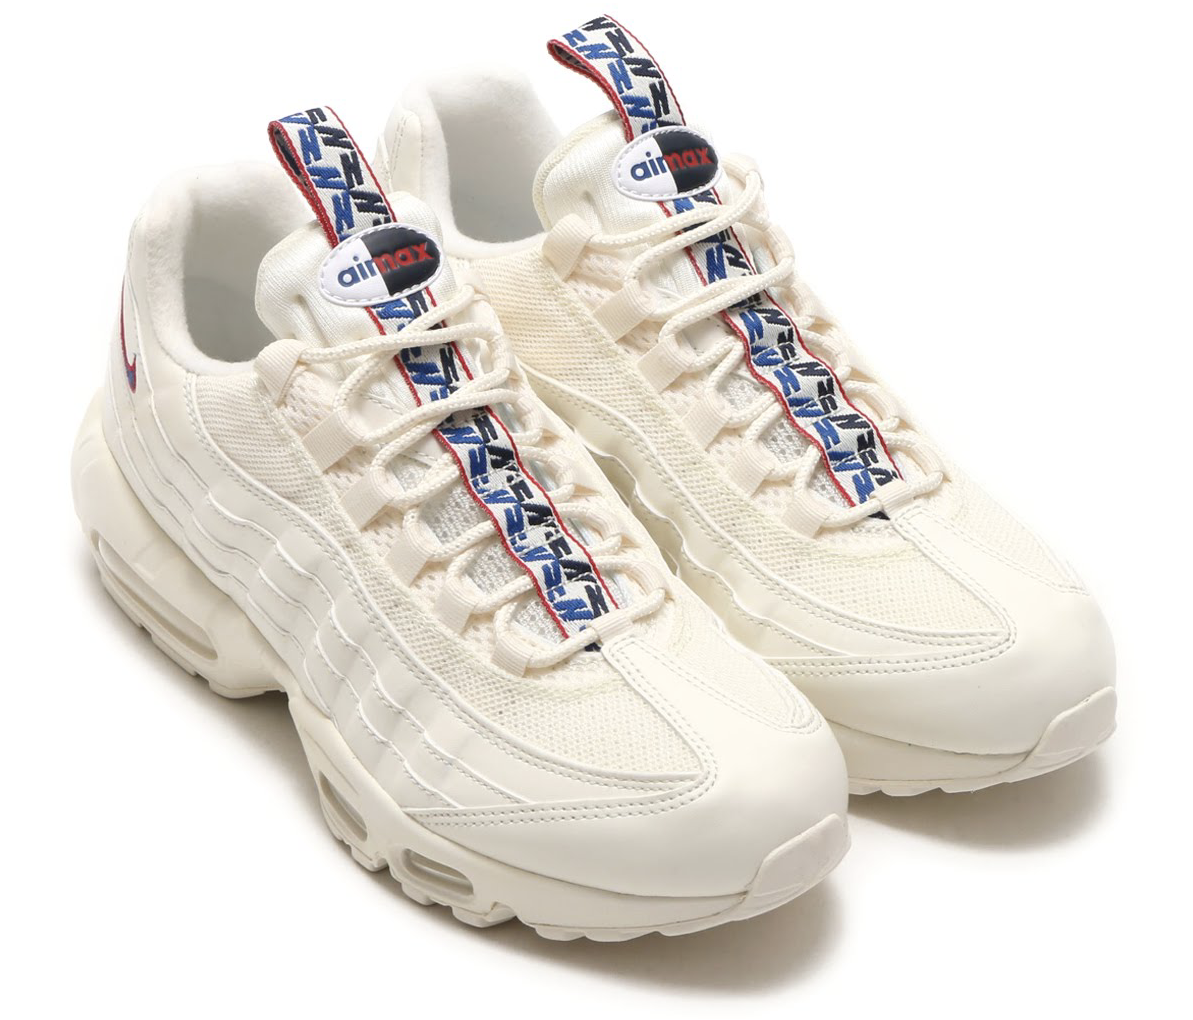 NIKE AIR MAX 95 TT (ナイキ エア マックス 95 TT) SAIL/GYM BLUE-GYM RED